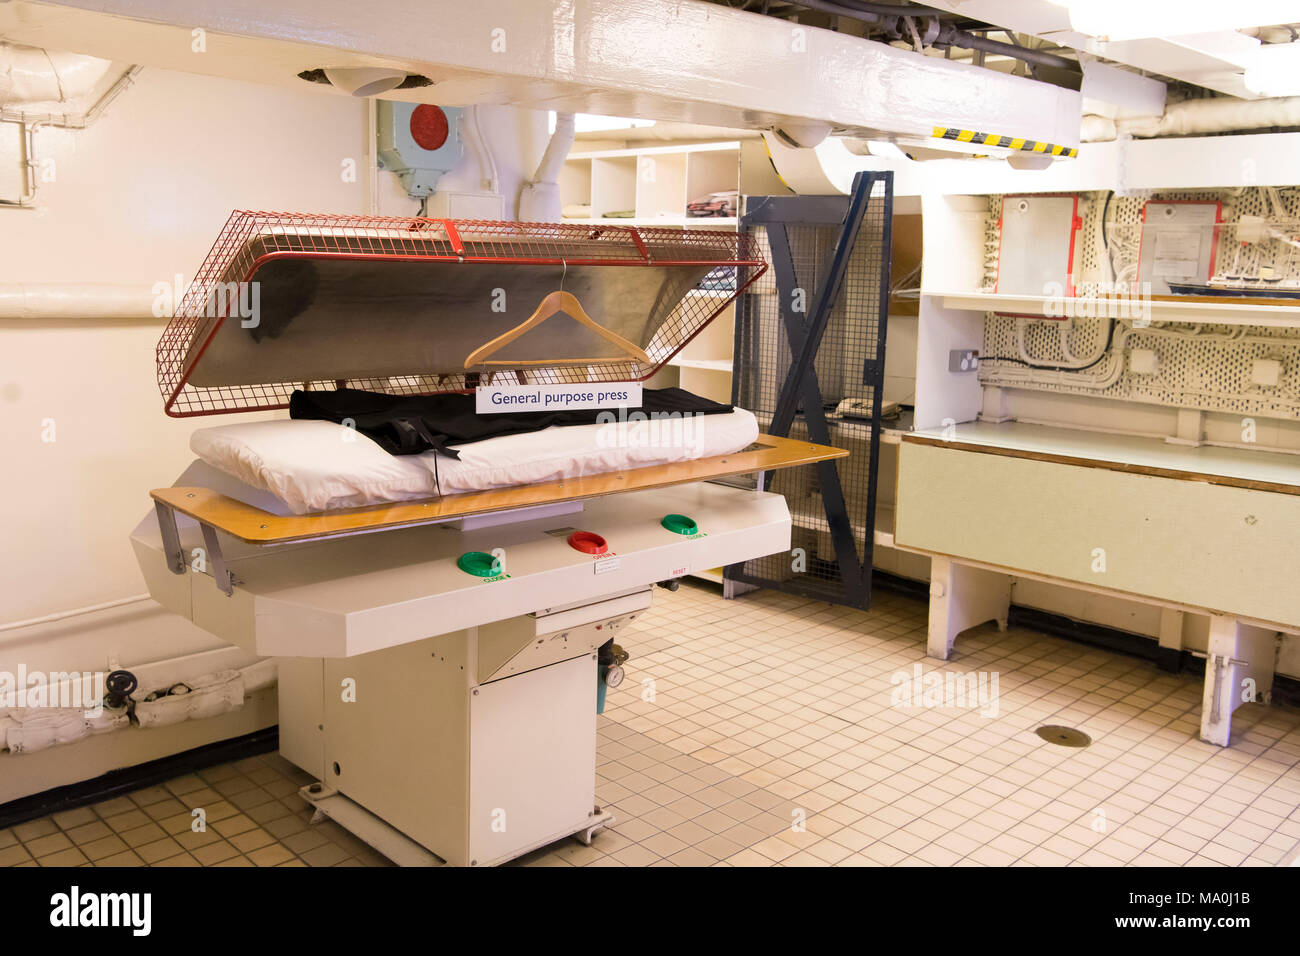 Interior pictures showing the laundrette of the Royal Yacht Britania, also known as Her Majesty's Yacht Britannia, which is the former royal yacht of  Stock Photo